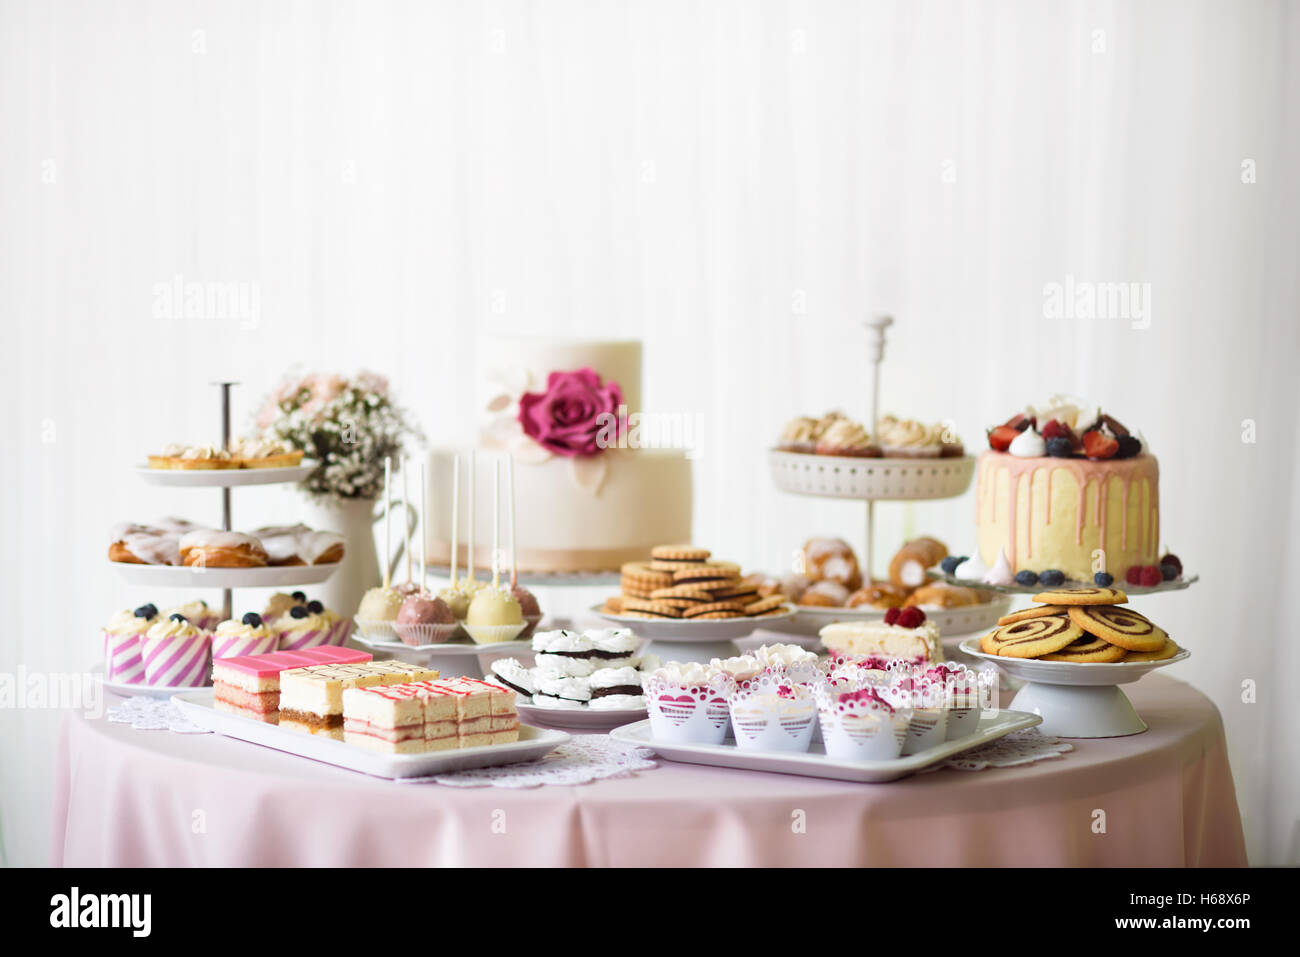 Wedding Cakes Table Stock Photos & Wedding Cakes Table Stock Images ...